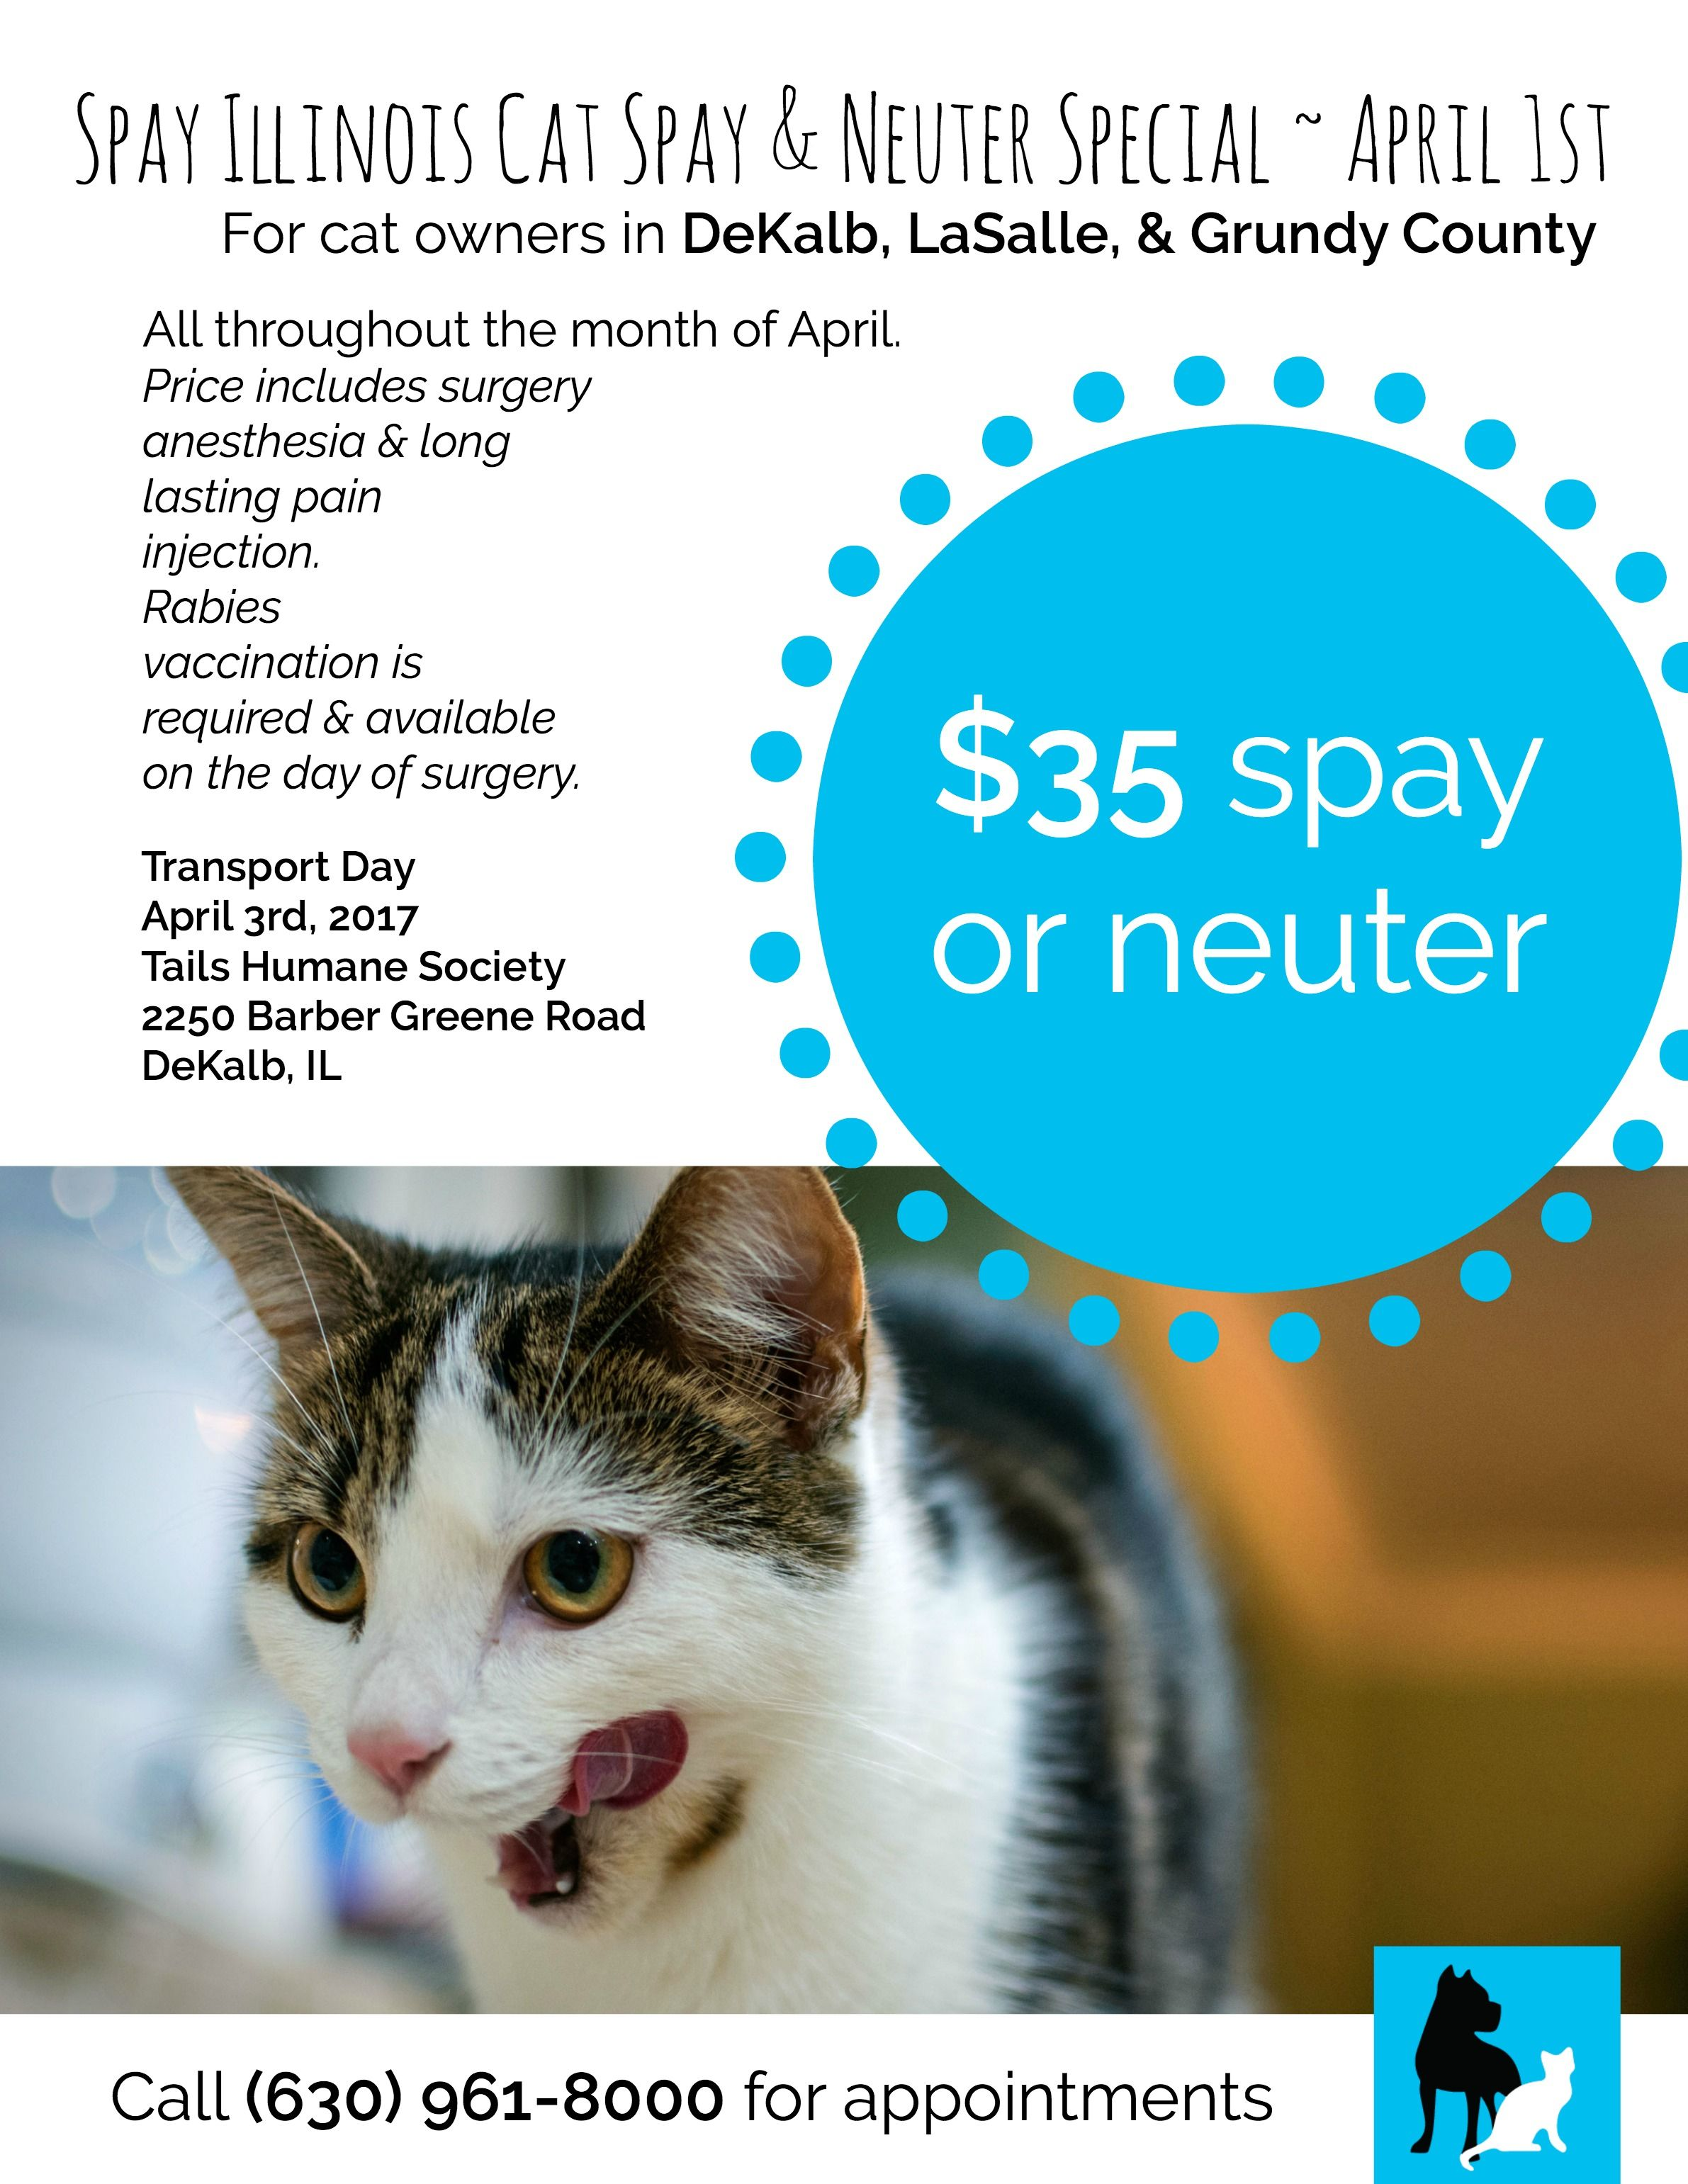 Transports For Spay Neuter Available In April From Dekalb Il Spay Grundy County Dekalb